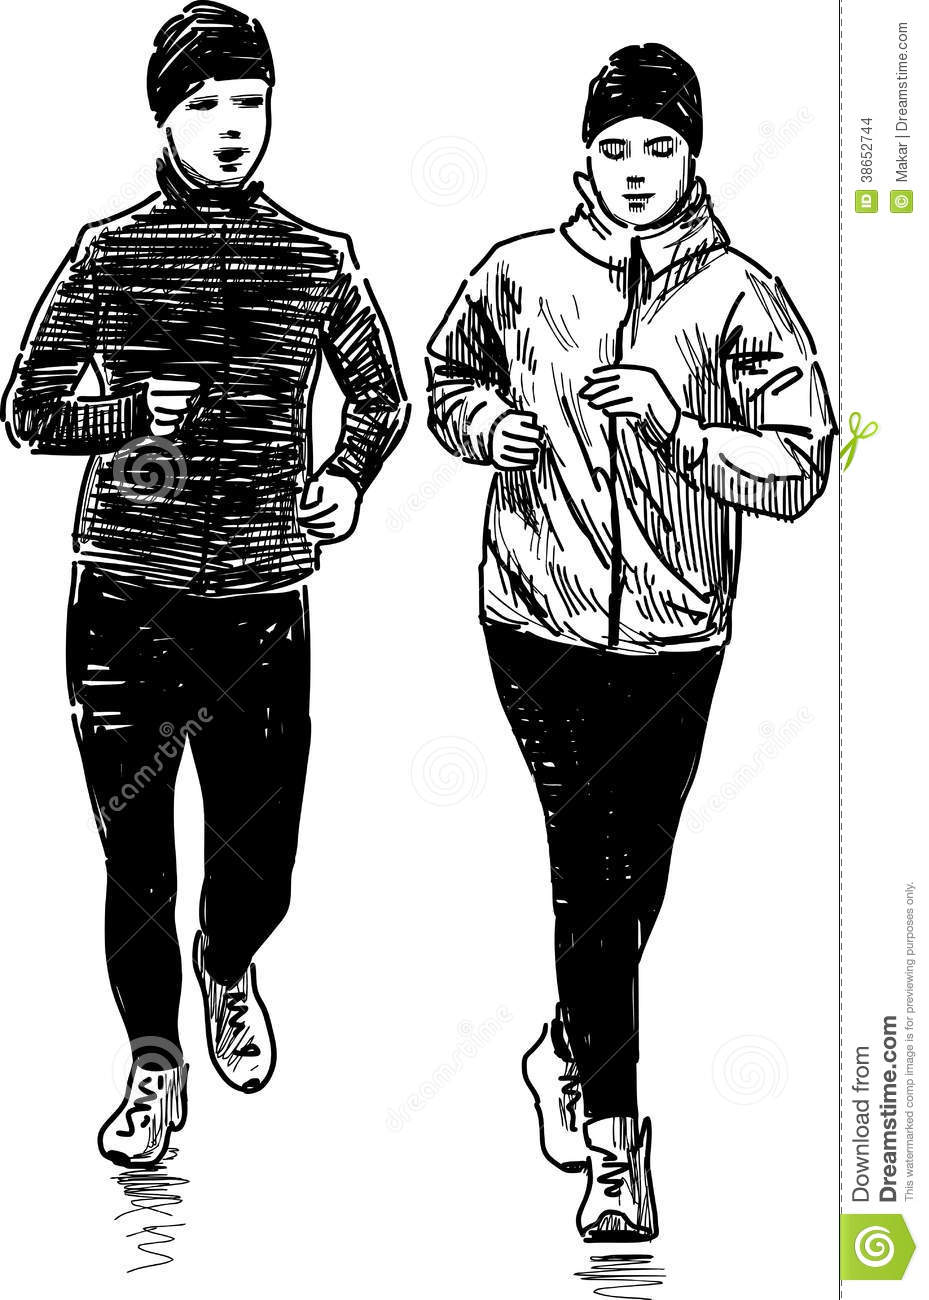 Jogging People Stock Vector Illustration Of Silhouette